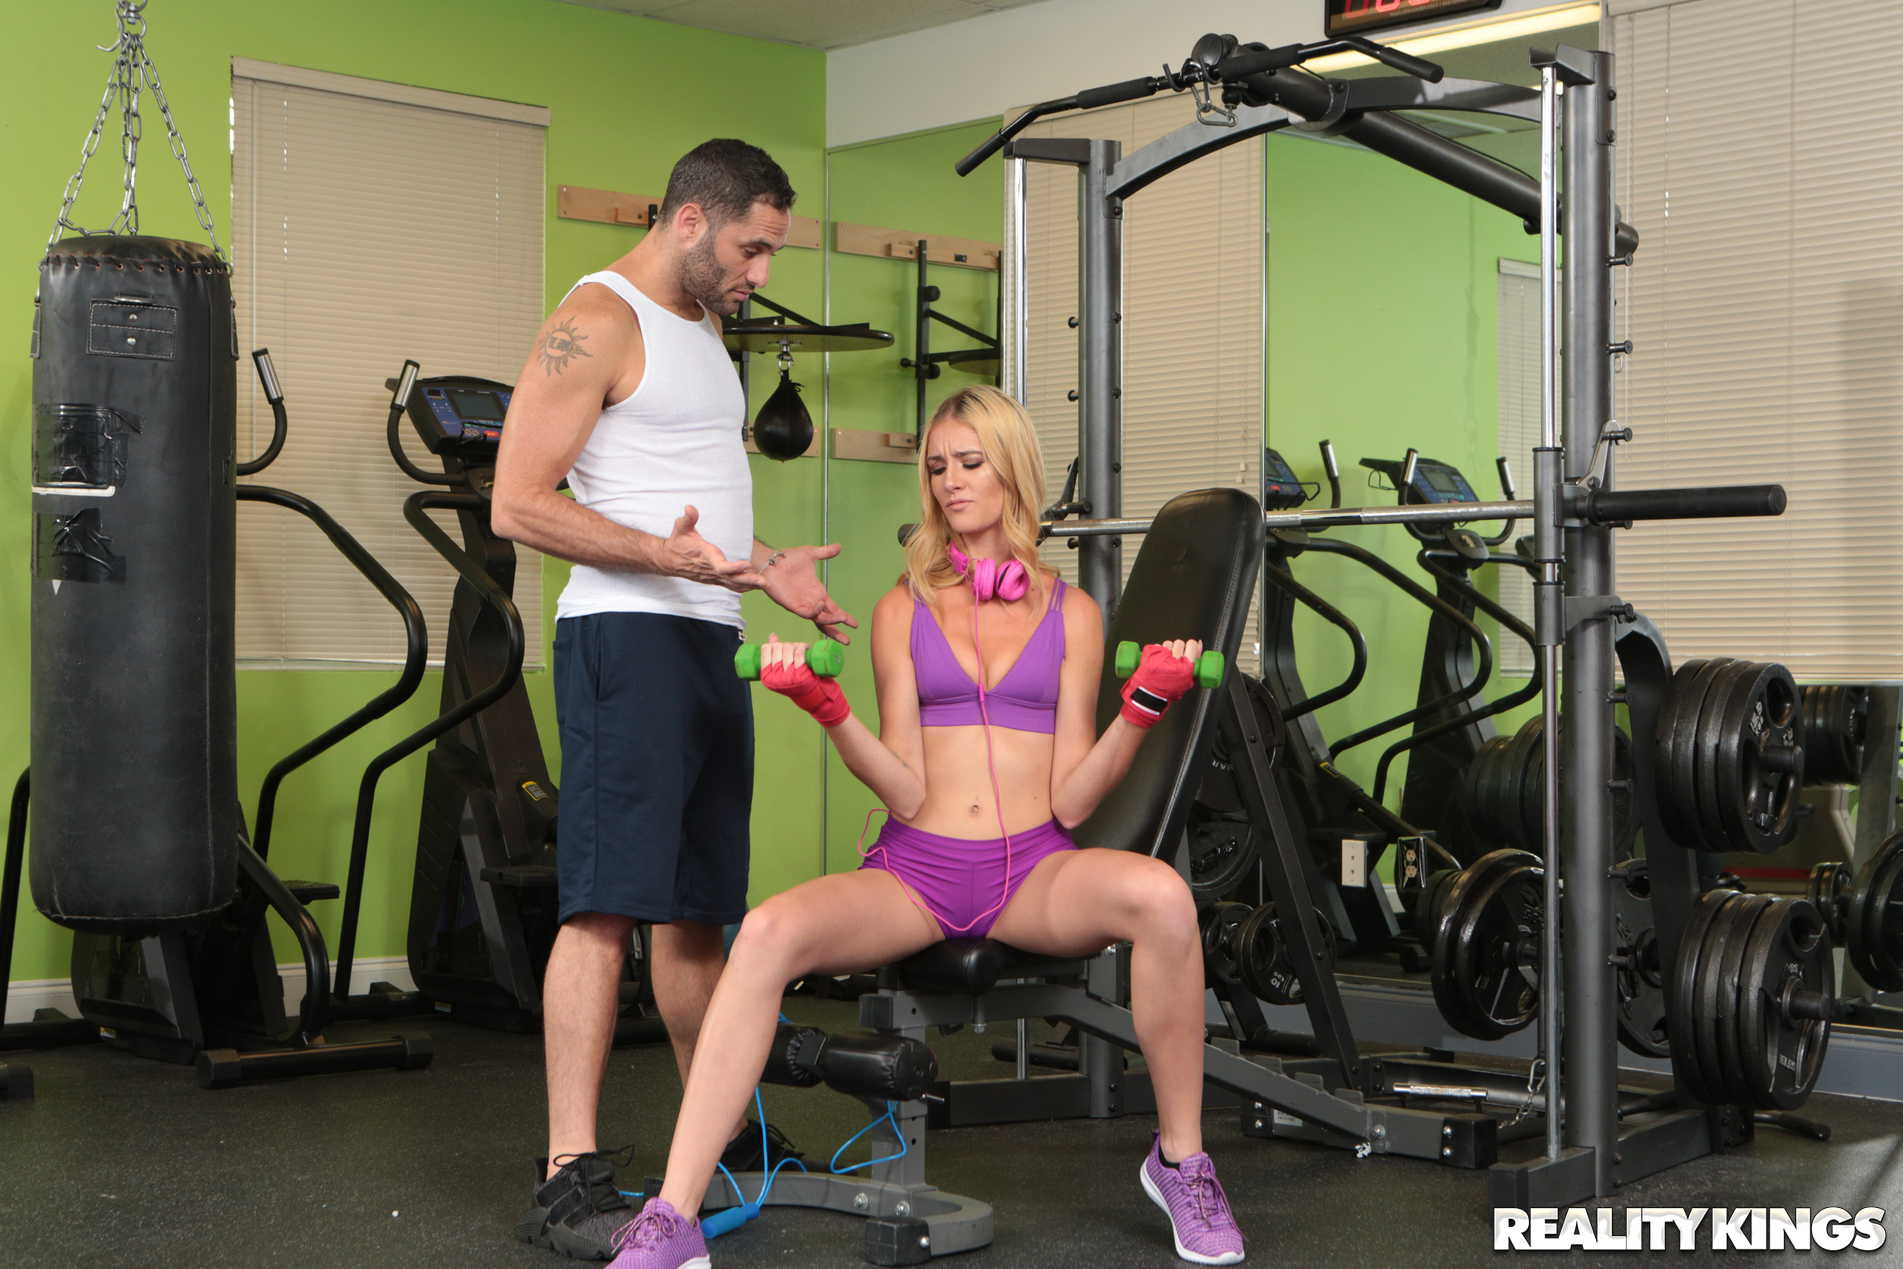 Reality Kings 'Body Blow Your Load' starring Mazzy Grace (Photo 48)